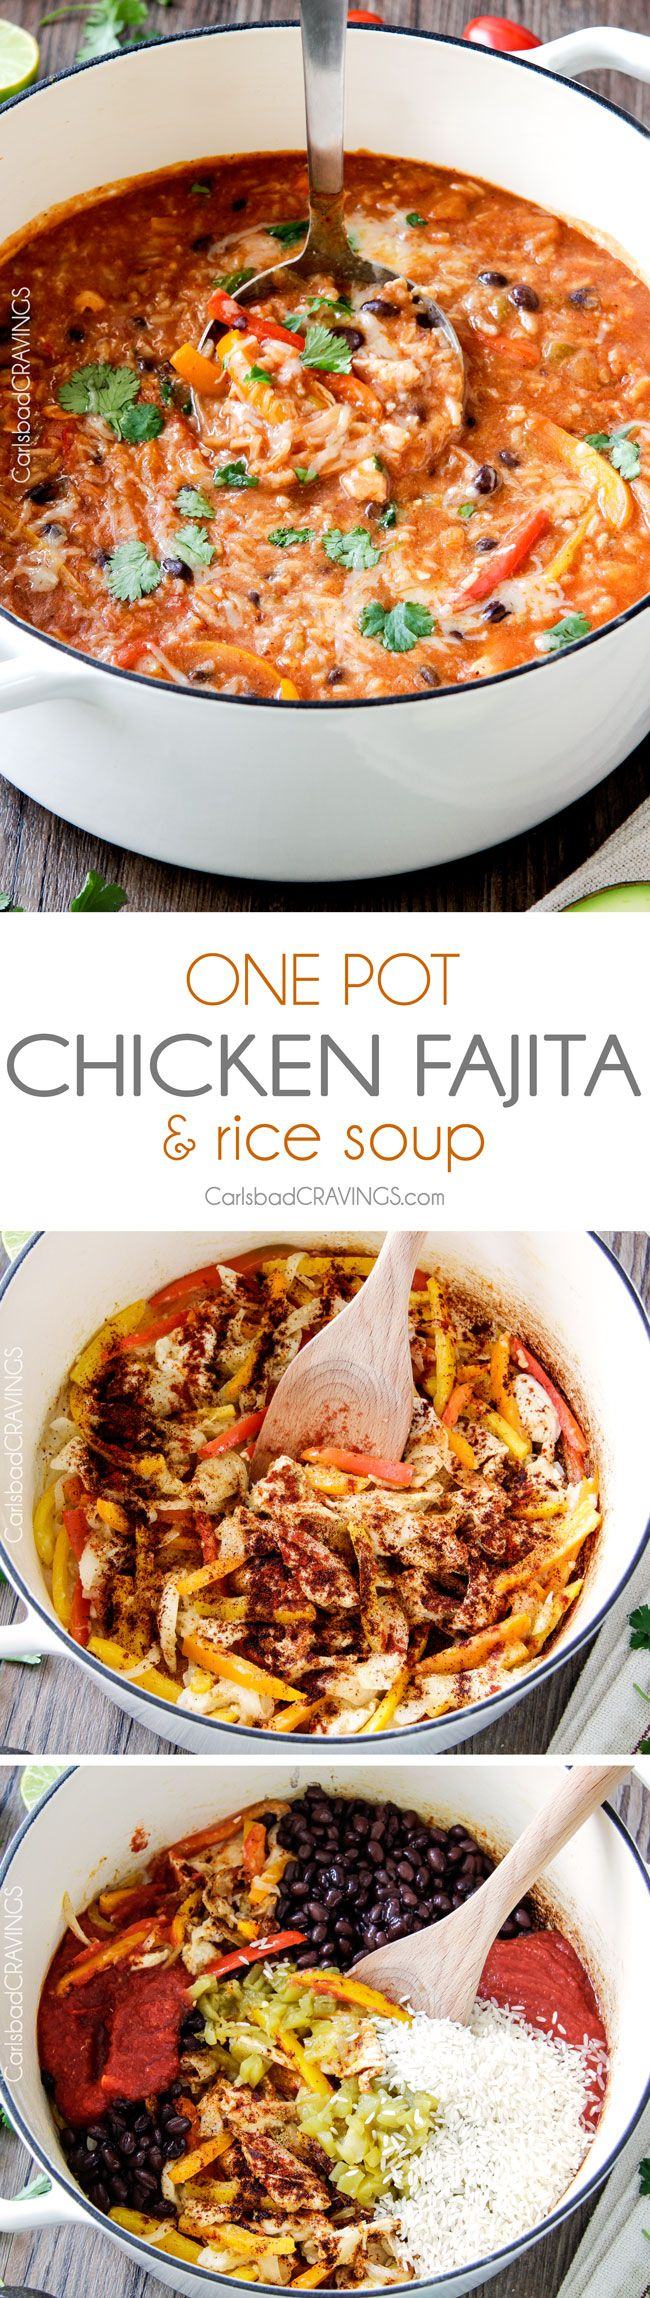 ONE POT Pepper Jack Chicken Fajita and Rice Soup is packed with your favorite fajita flavors and is SO easy, delicious and comforting! The whole family will love this soup!